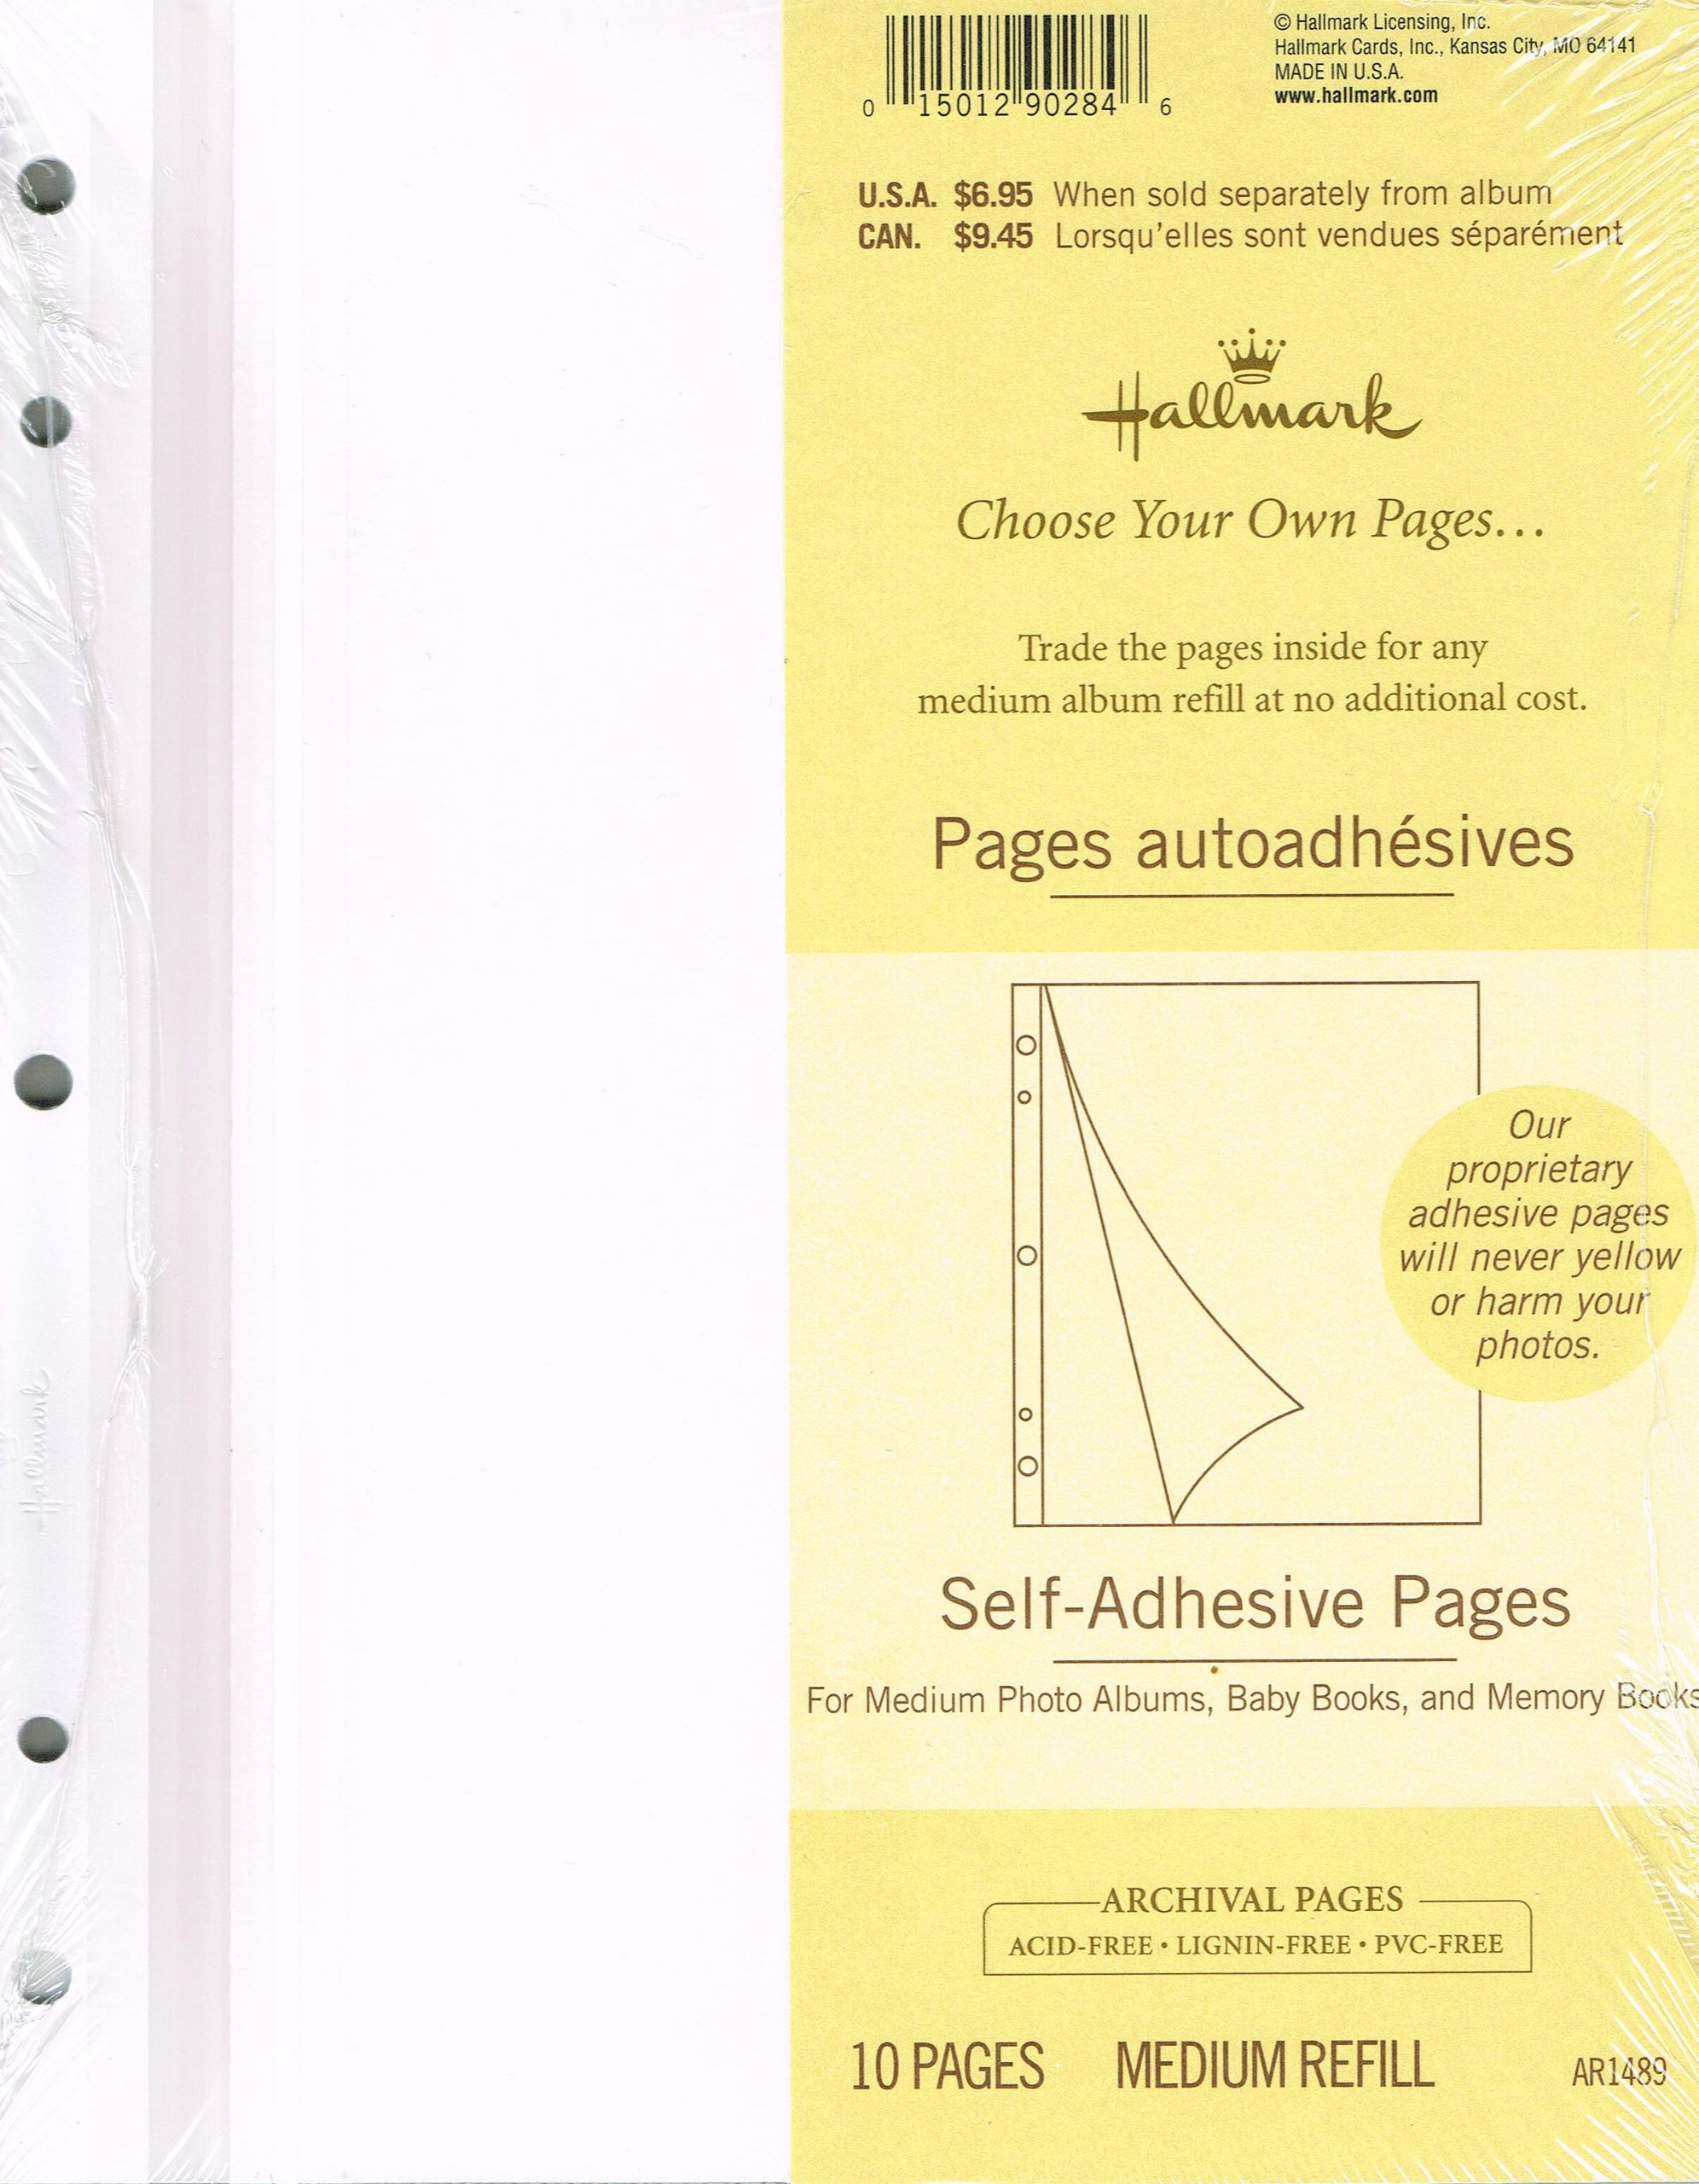 Hallmark Medium Refill Self-Adhesive Pages